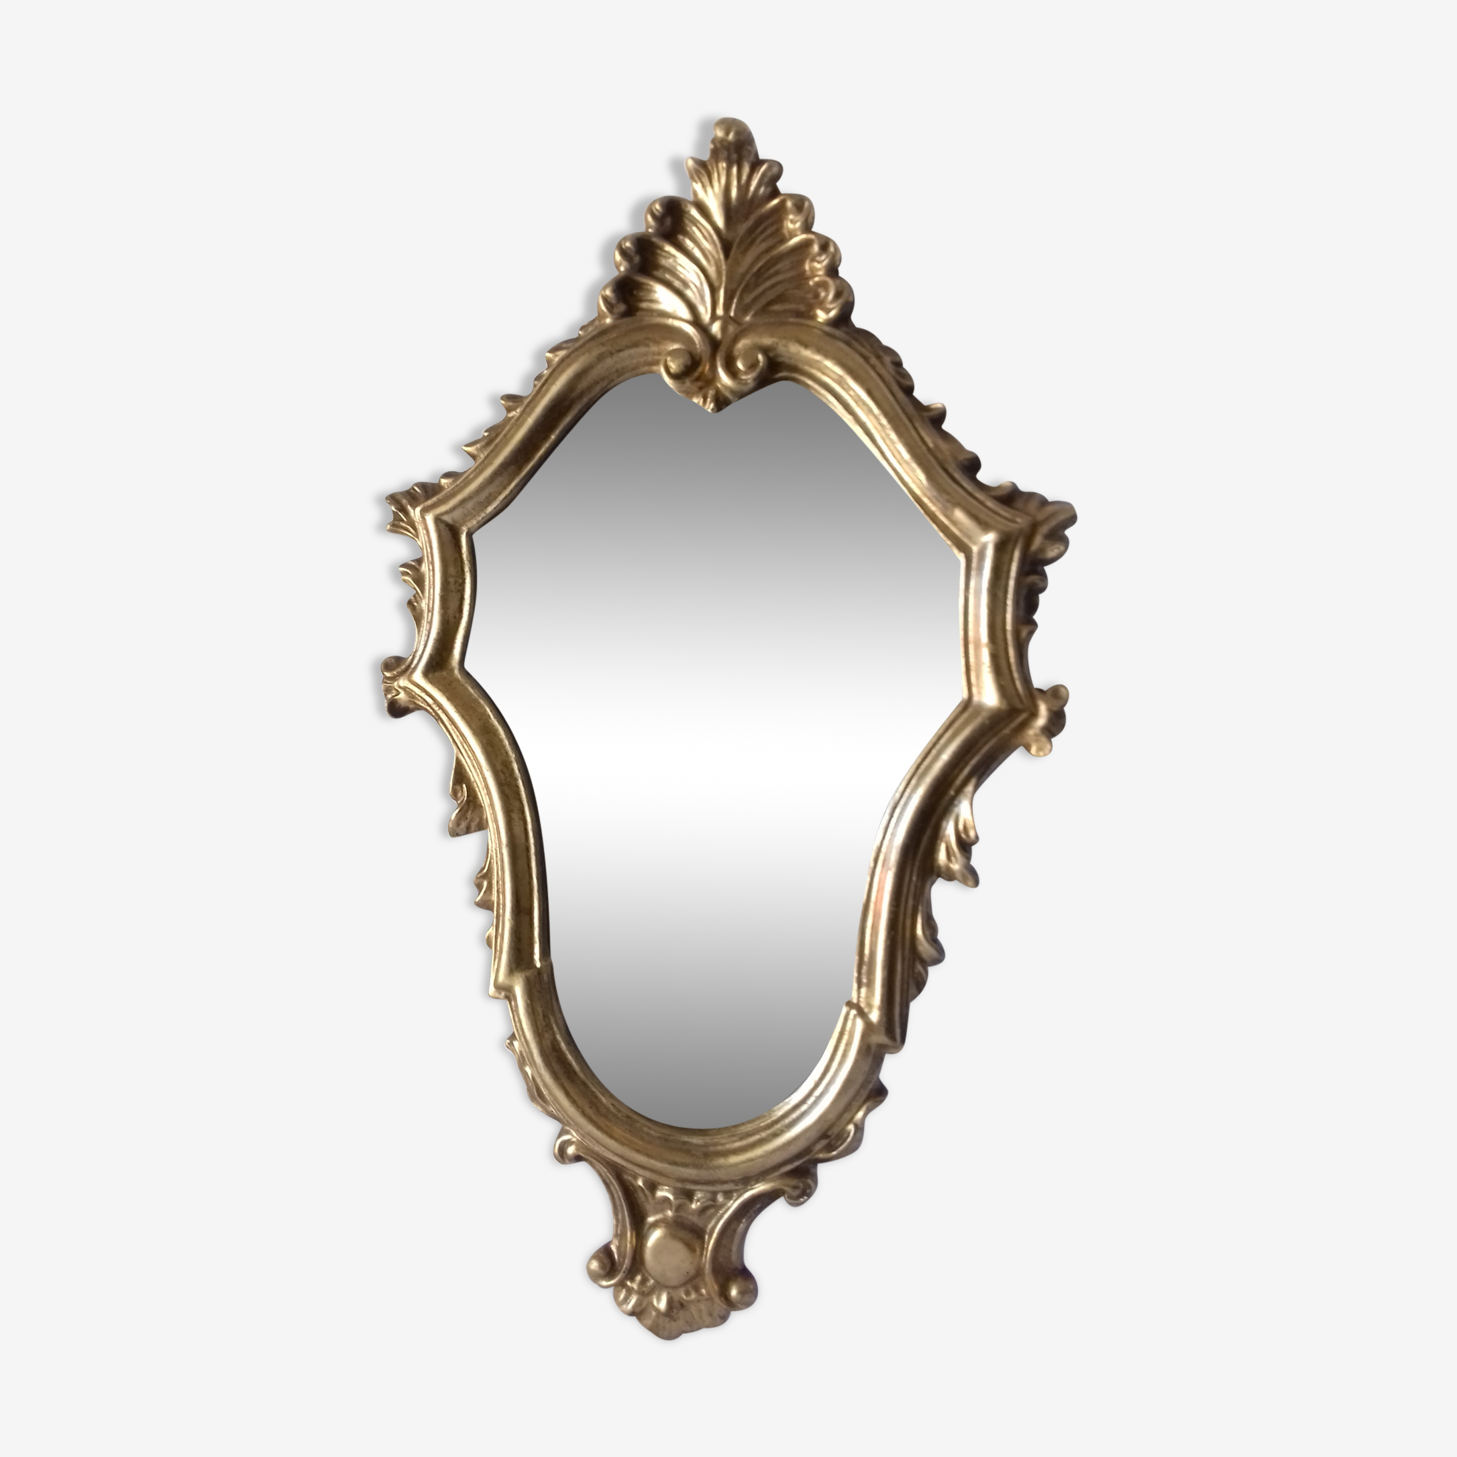 Very nice mirror wooden gold